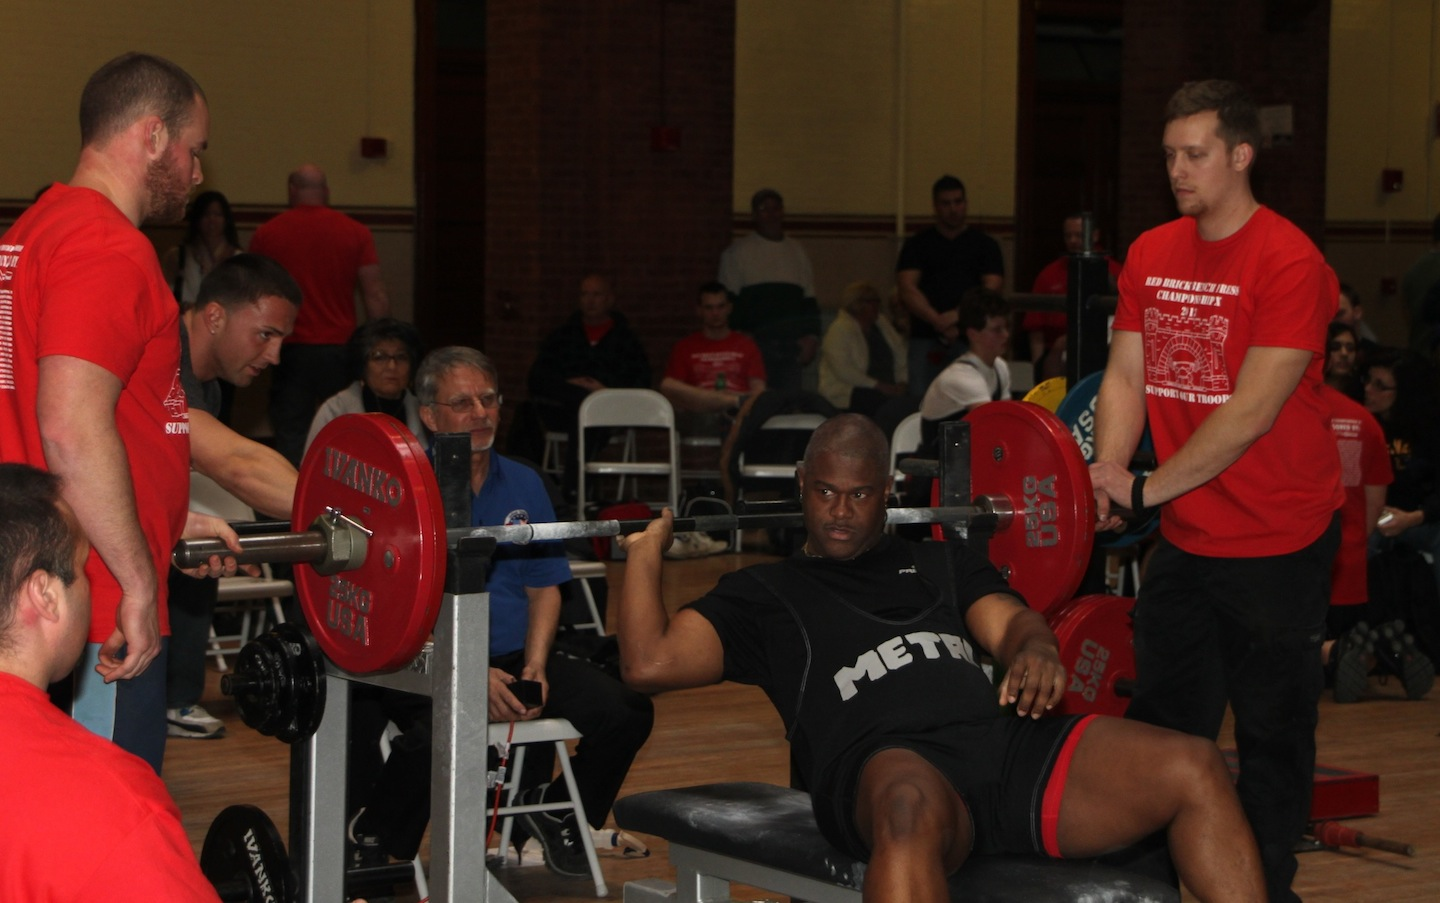 Anthony D. Gilmore was one of 135 weighlifters who competed last Saturday as part of the 10th annual USPA Red Brick Bench Press Championship  in Buffalo. The event, a fundraiser for local military. (photo by Thomas Cannuli)